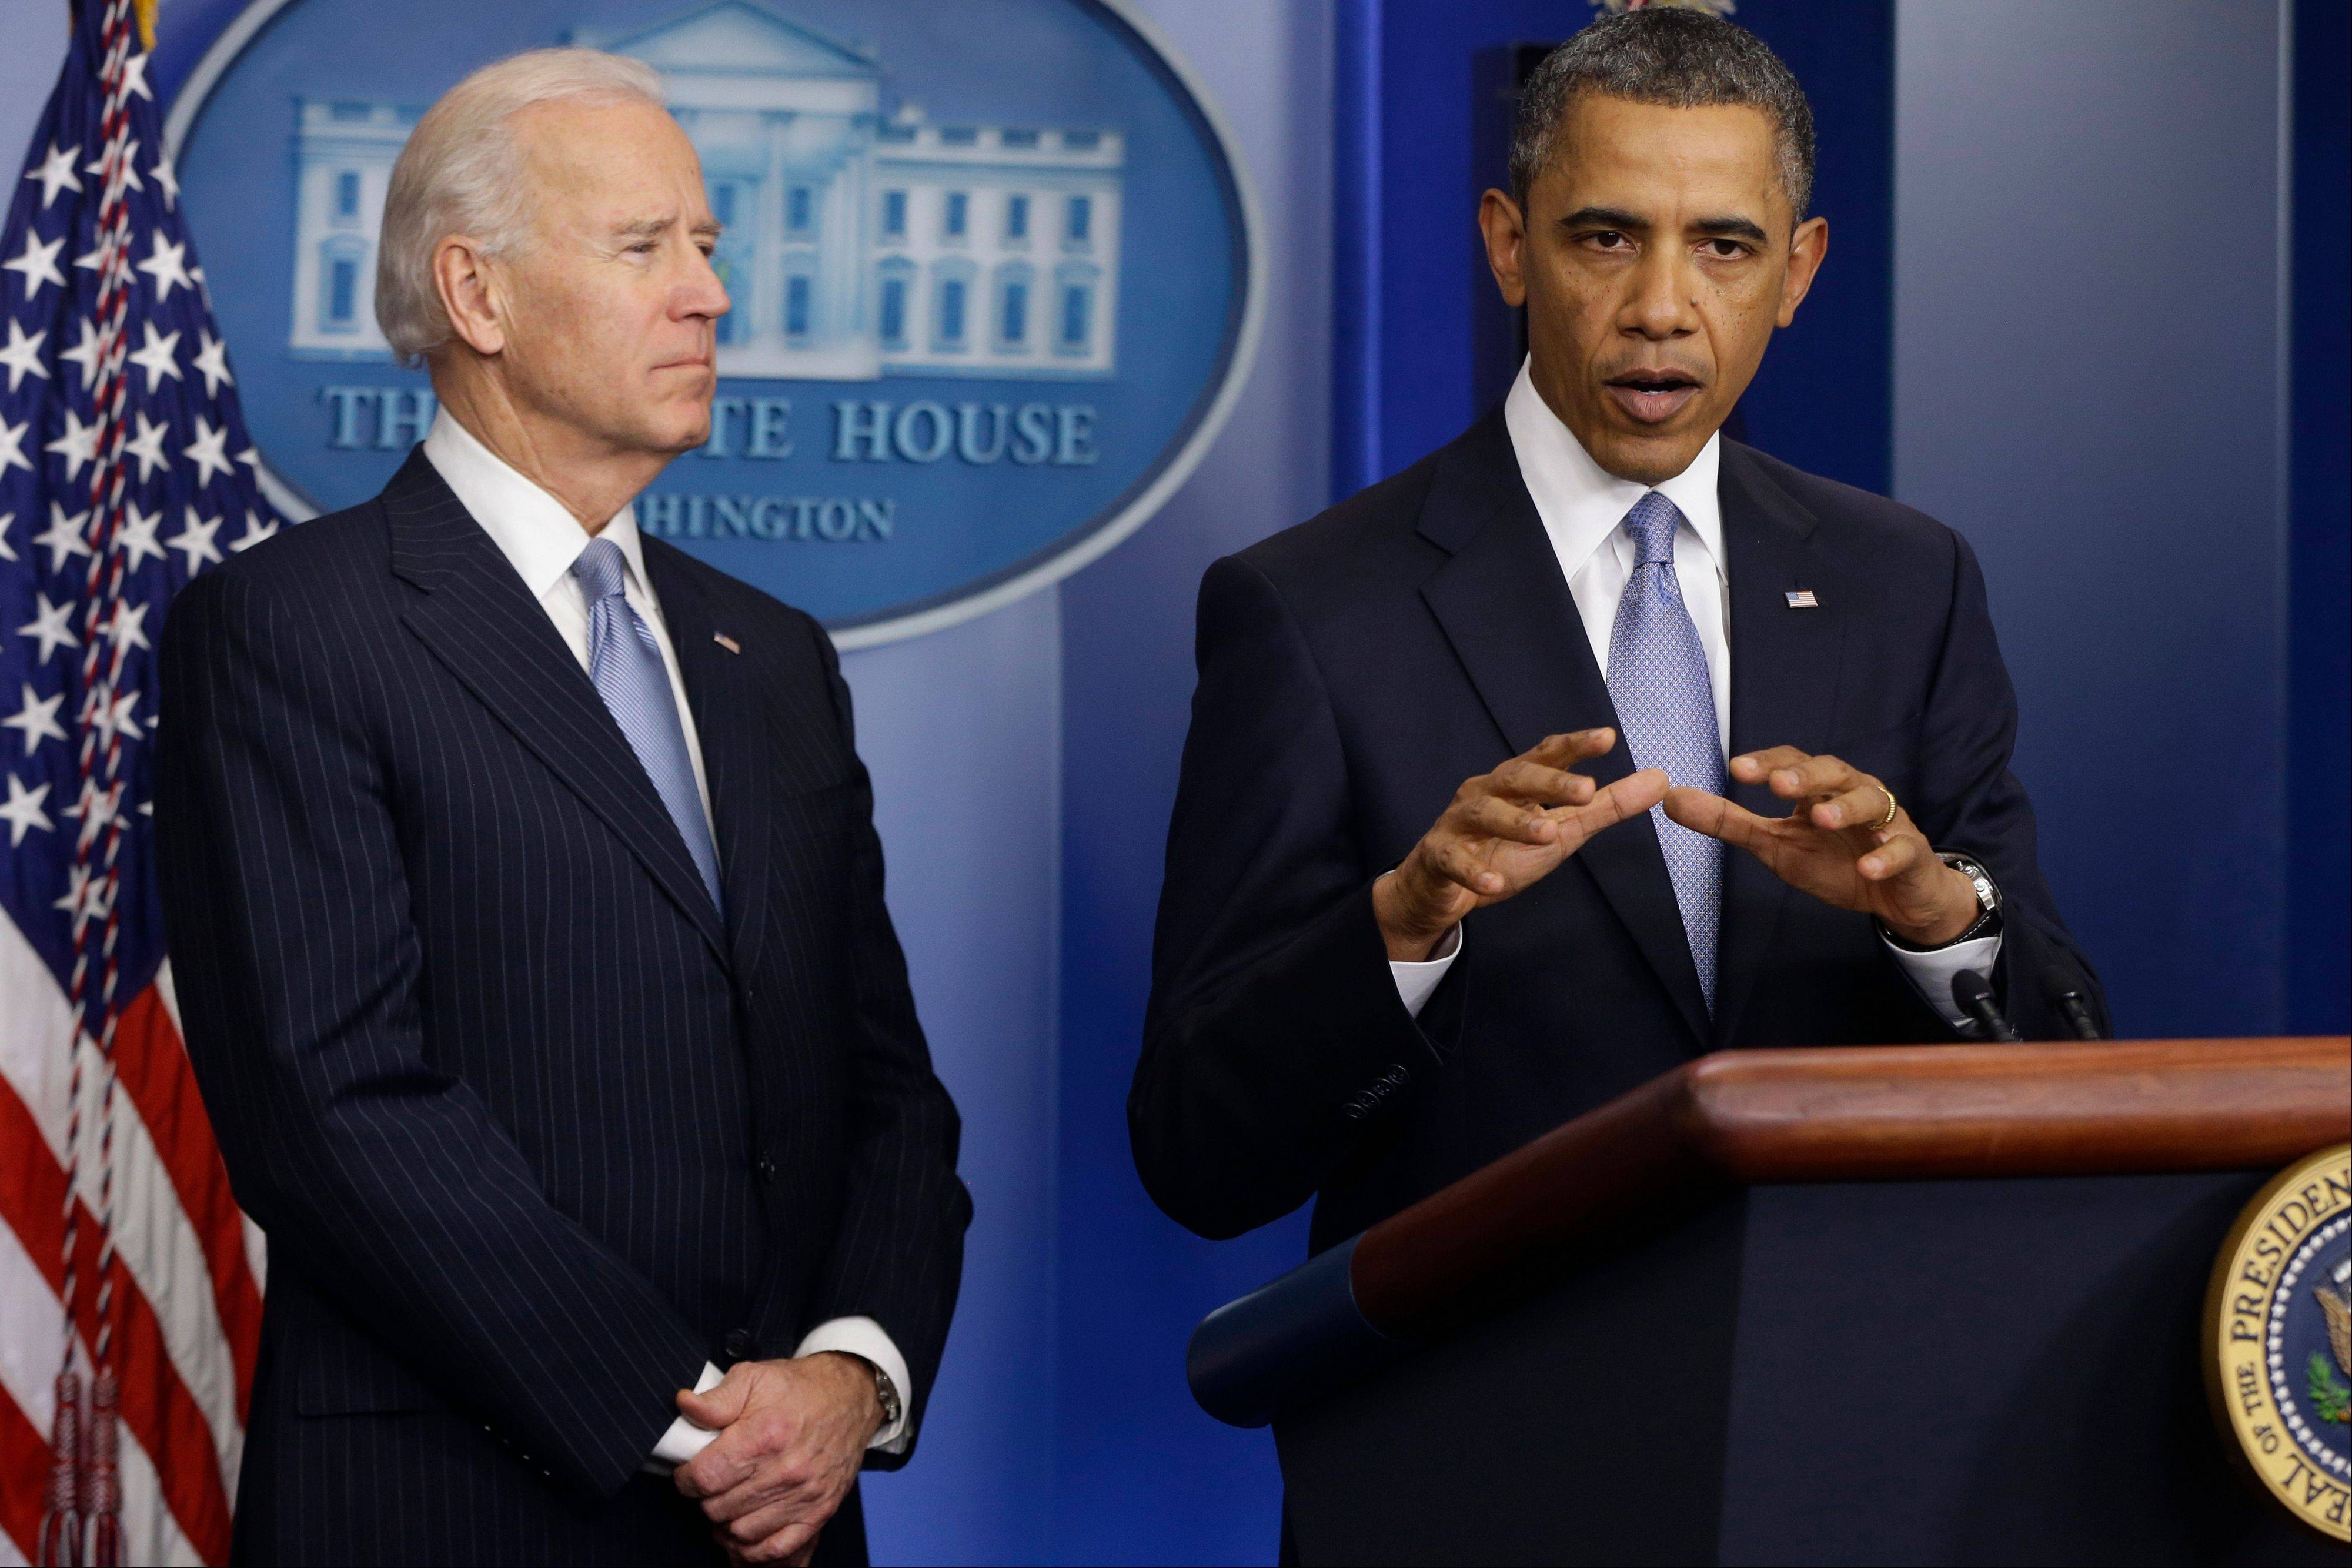 President Barack Obama and Vice President Joe Biden make a